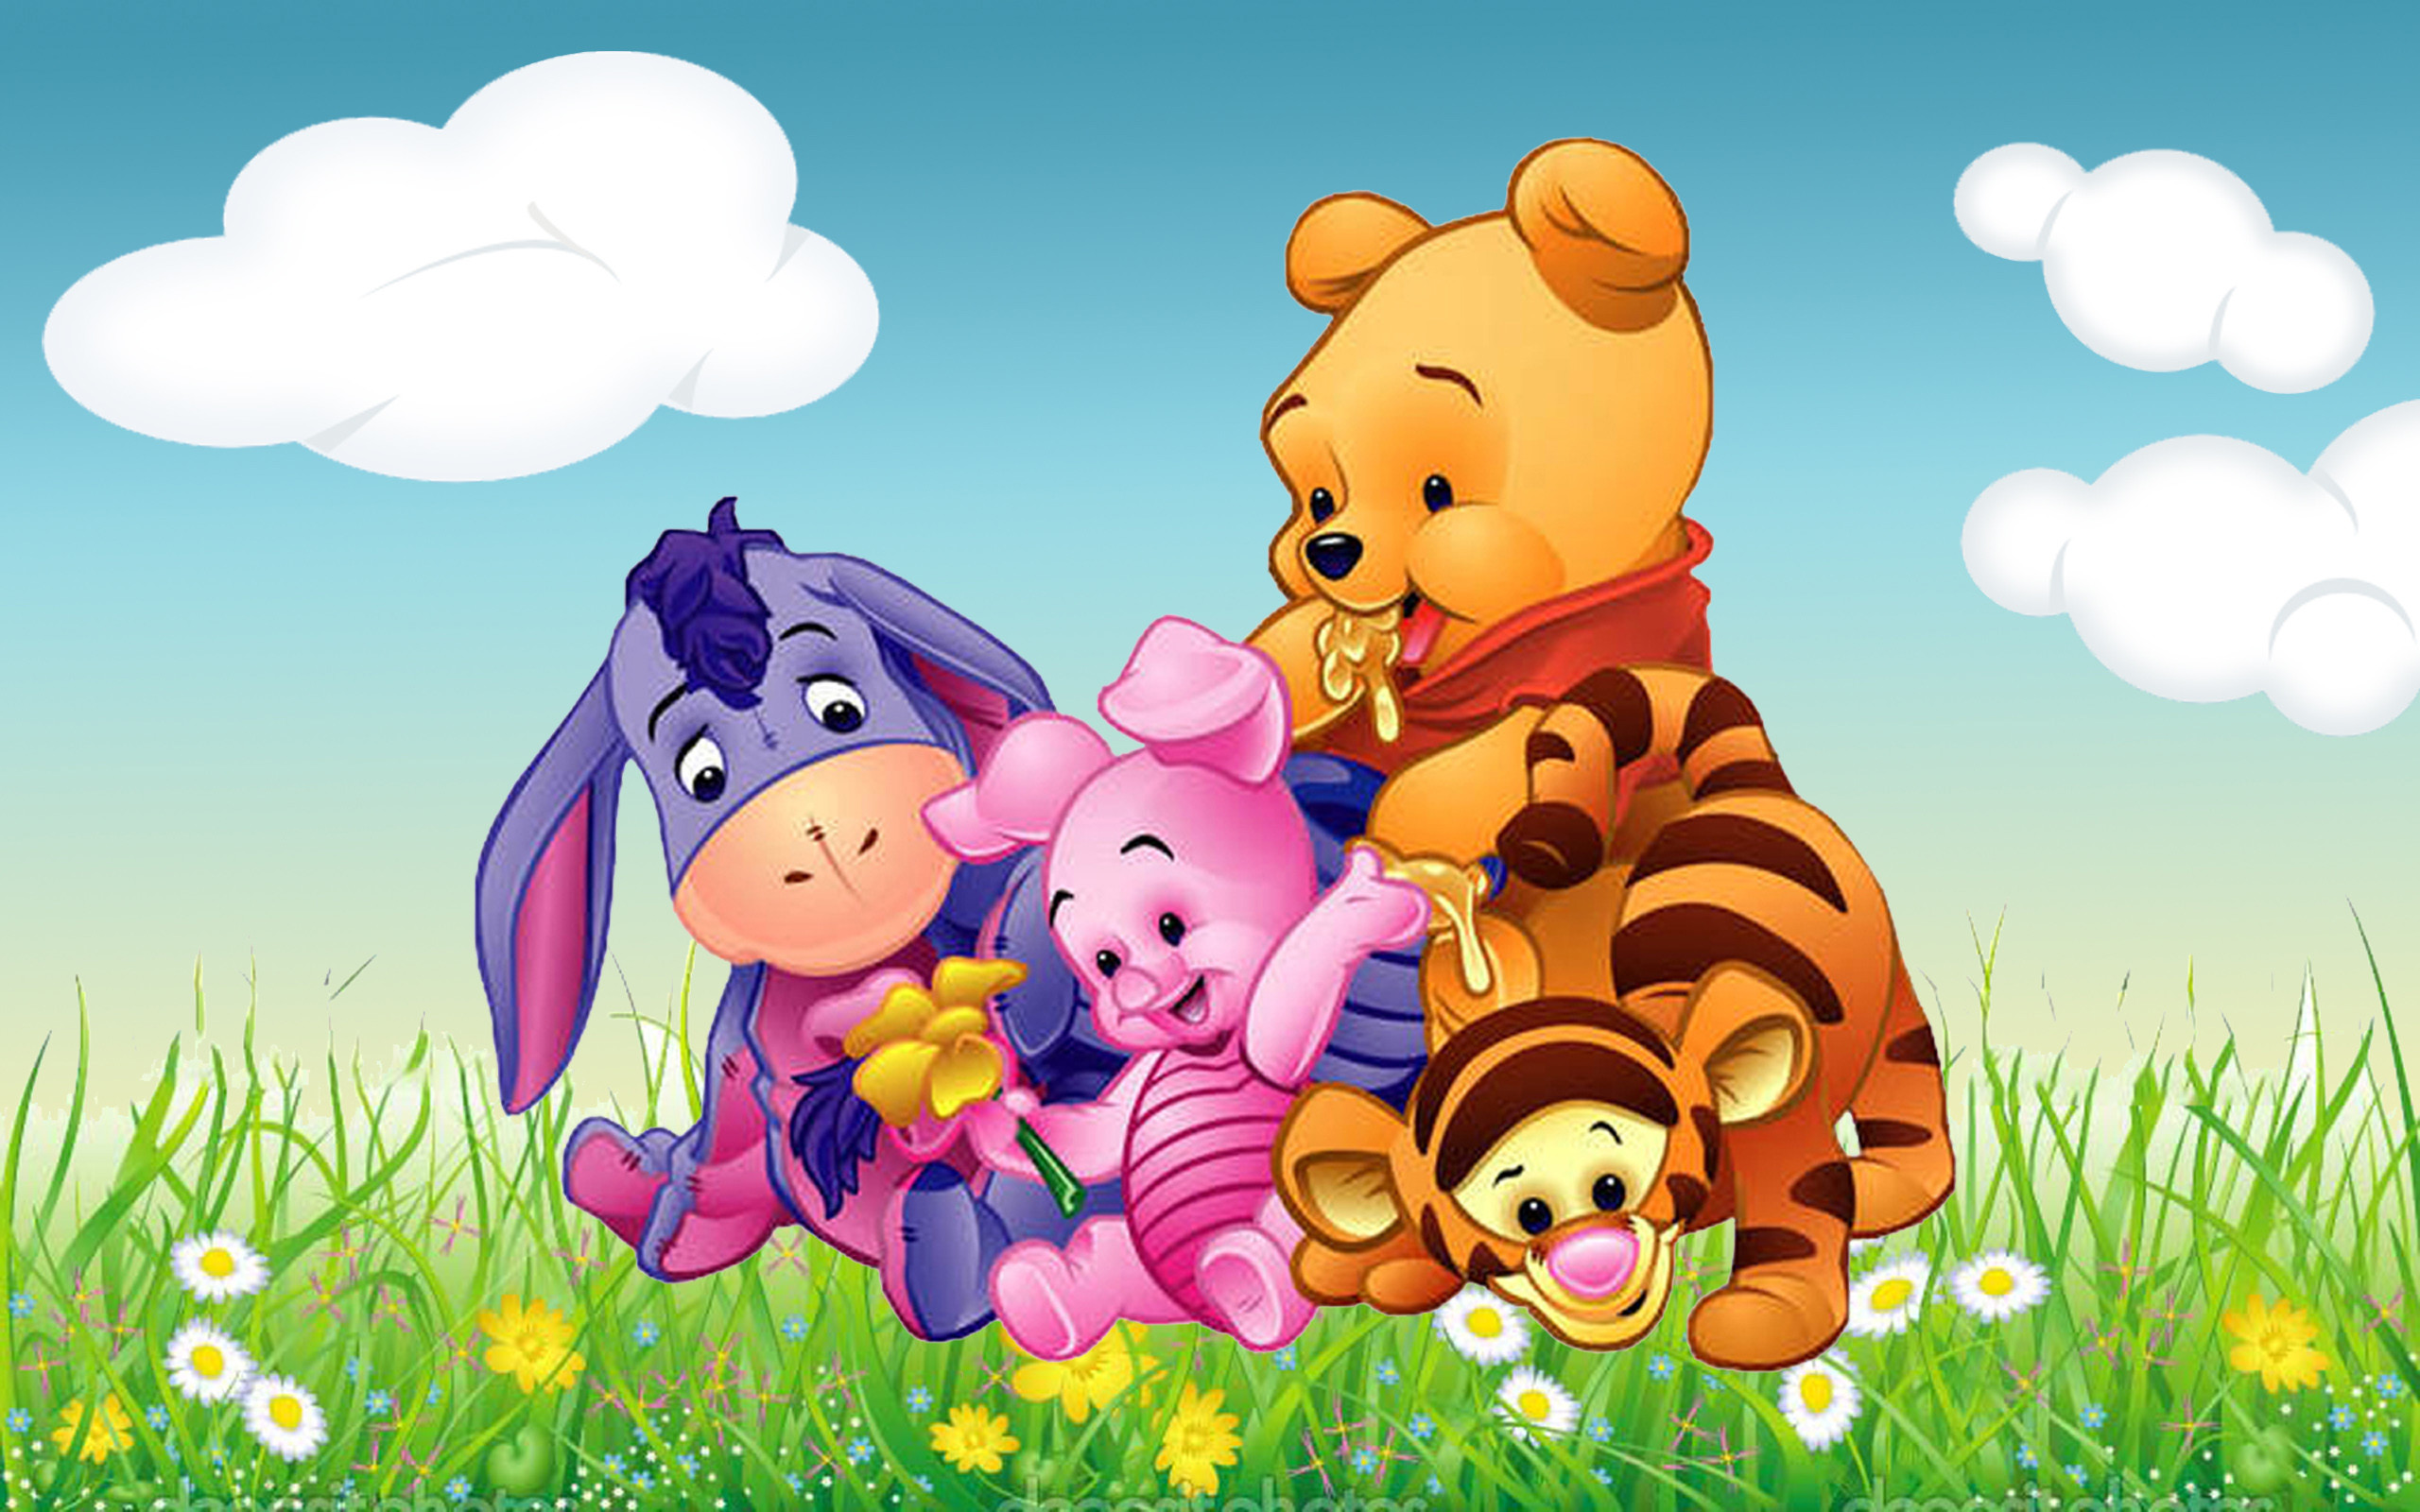 Winnie the pooh easter wallpaper 64 images - Winnie the pooh and friends wallpaper ...